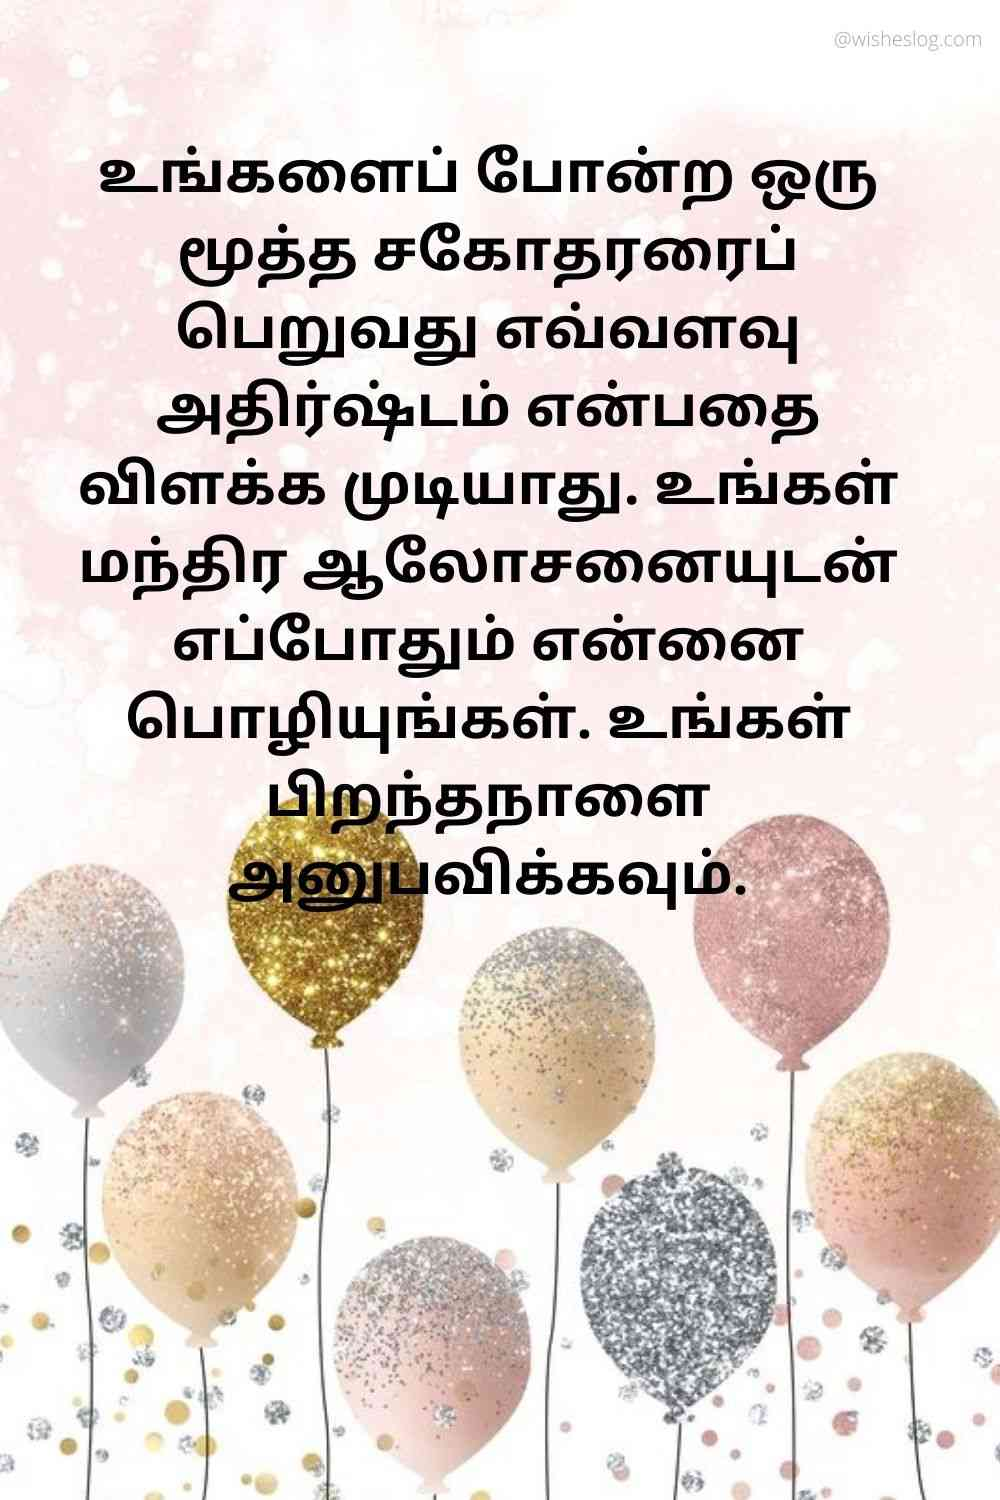 birthday wishes quotes in tamil for elder bro